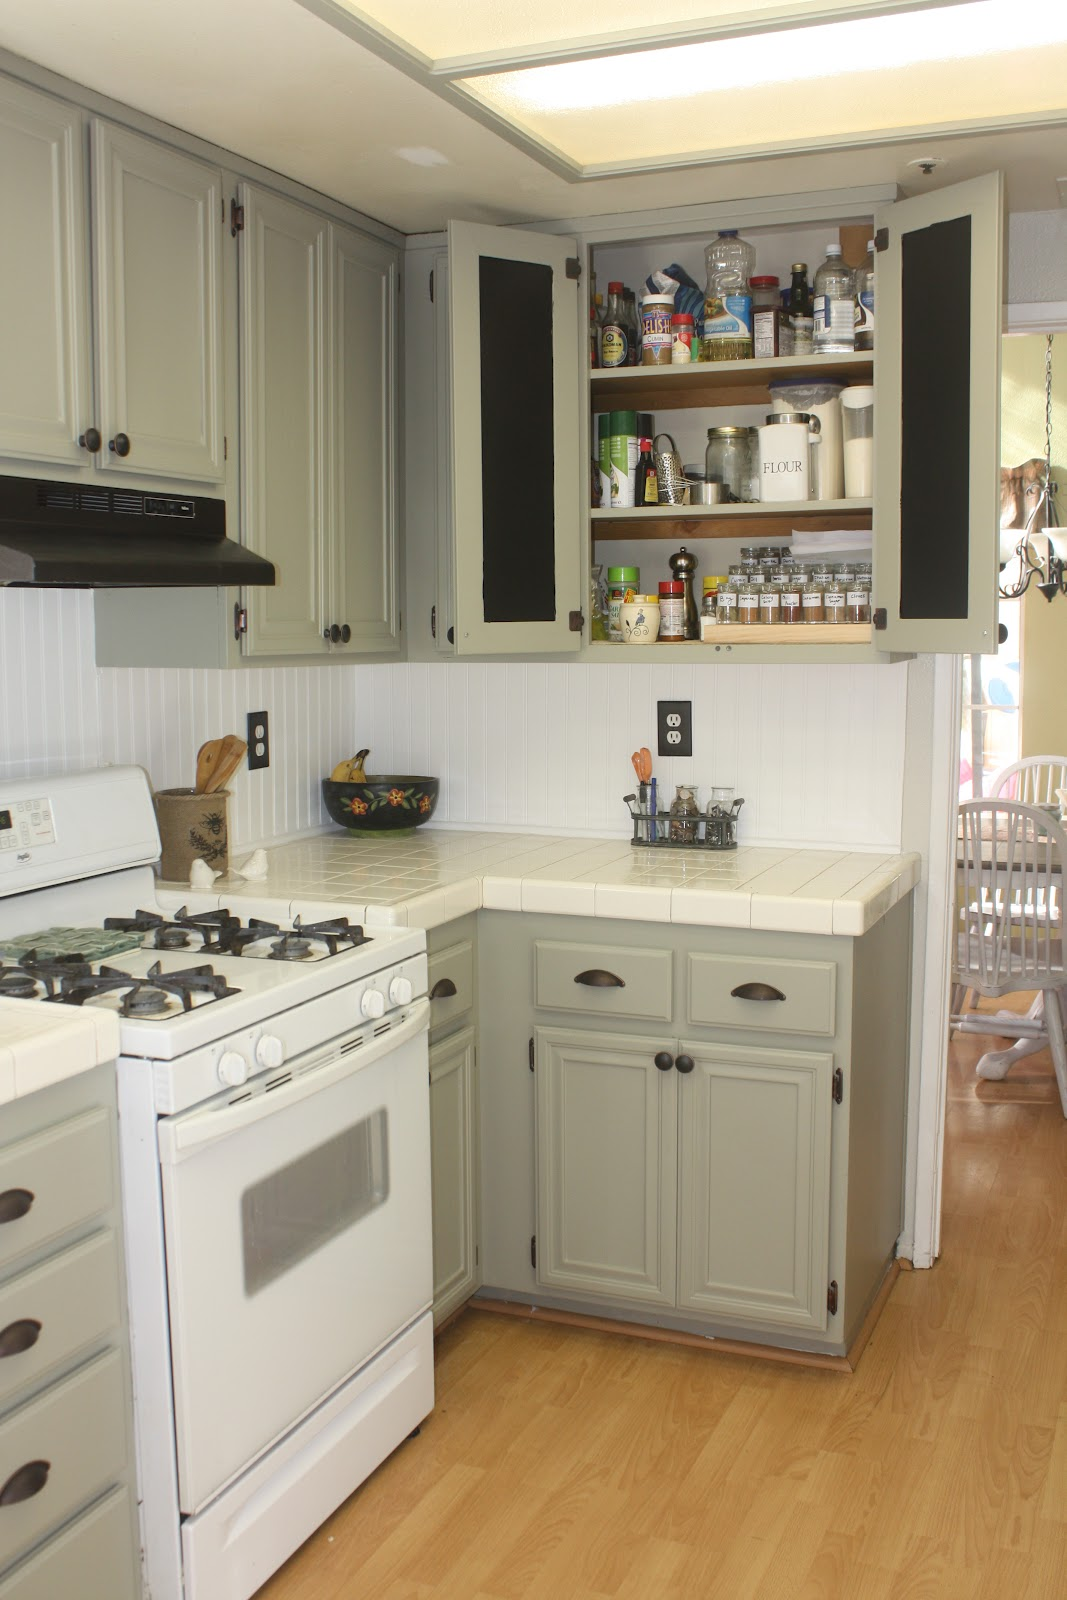 my new kitchen martha stewart kitchen cabinets Here is the price break down for our kitchen Wainscoting back splash 30 00 One sheet of wainscoting one tube of adhesive and we had to convert the